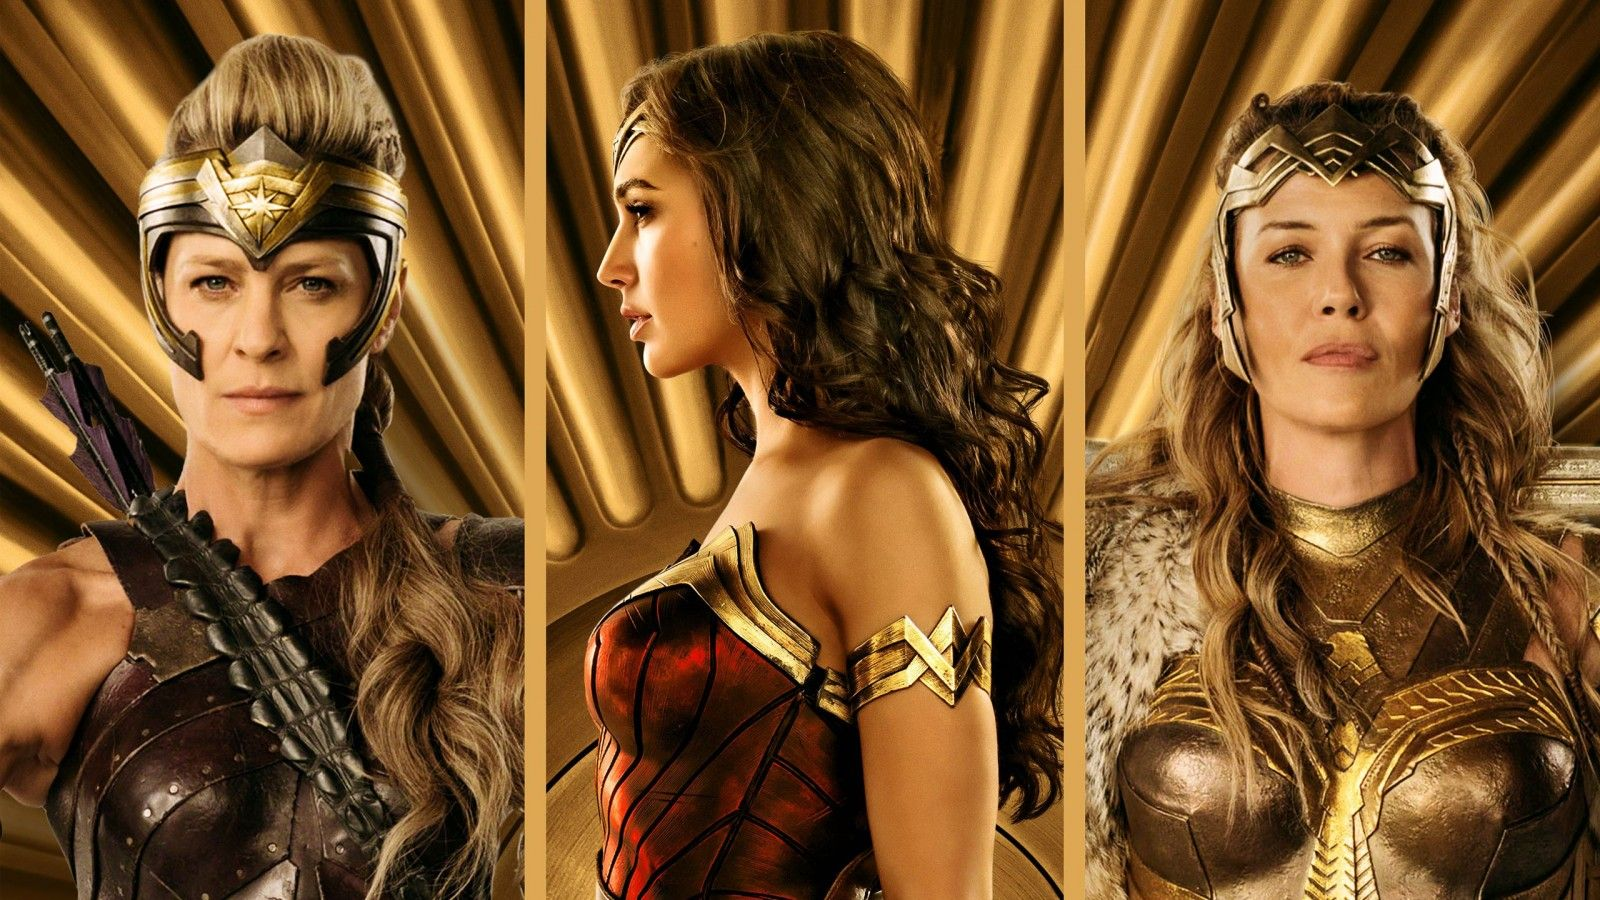 Awesome Wonder Woman Hippolyta General Antiope Wonder Woman Wonder Woman Movie Gal Gadot